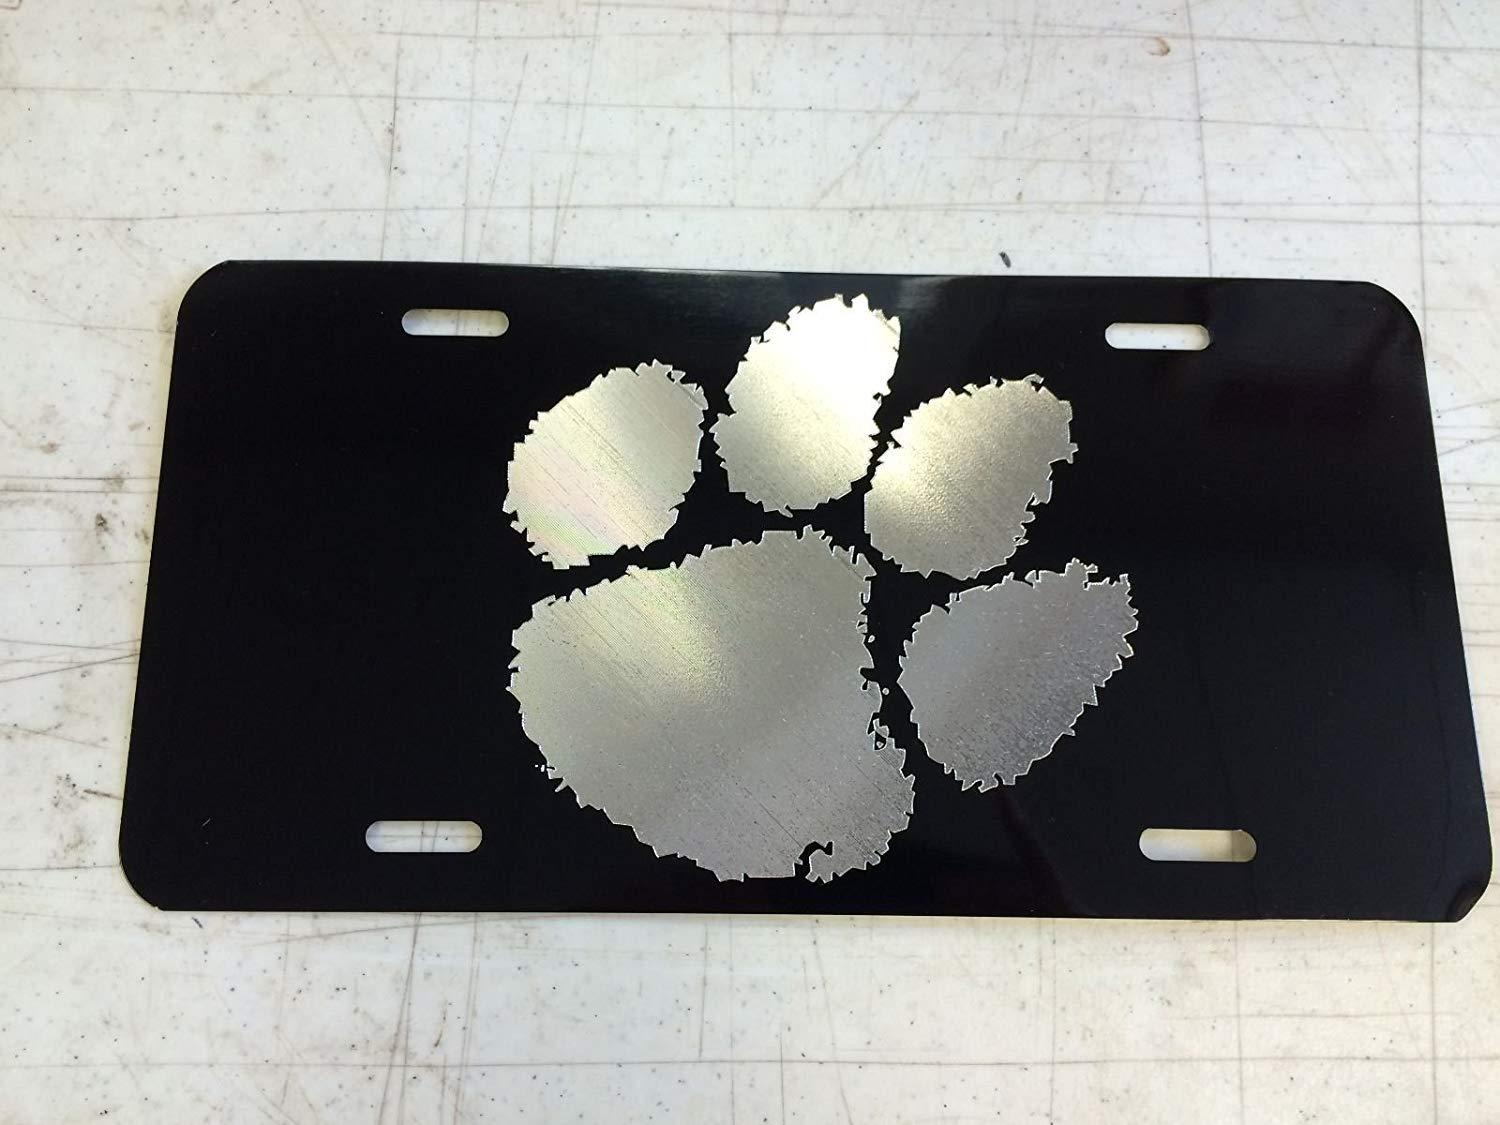 Chik yx Clemson Tiger Paw Car Tag on Aluminum License Plate